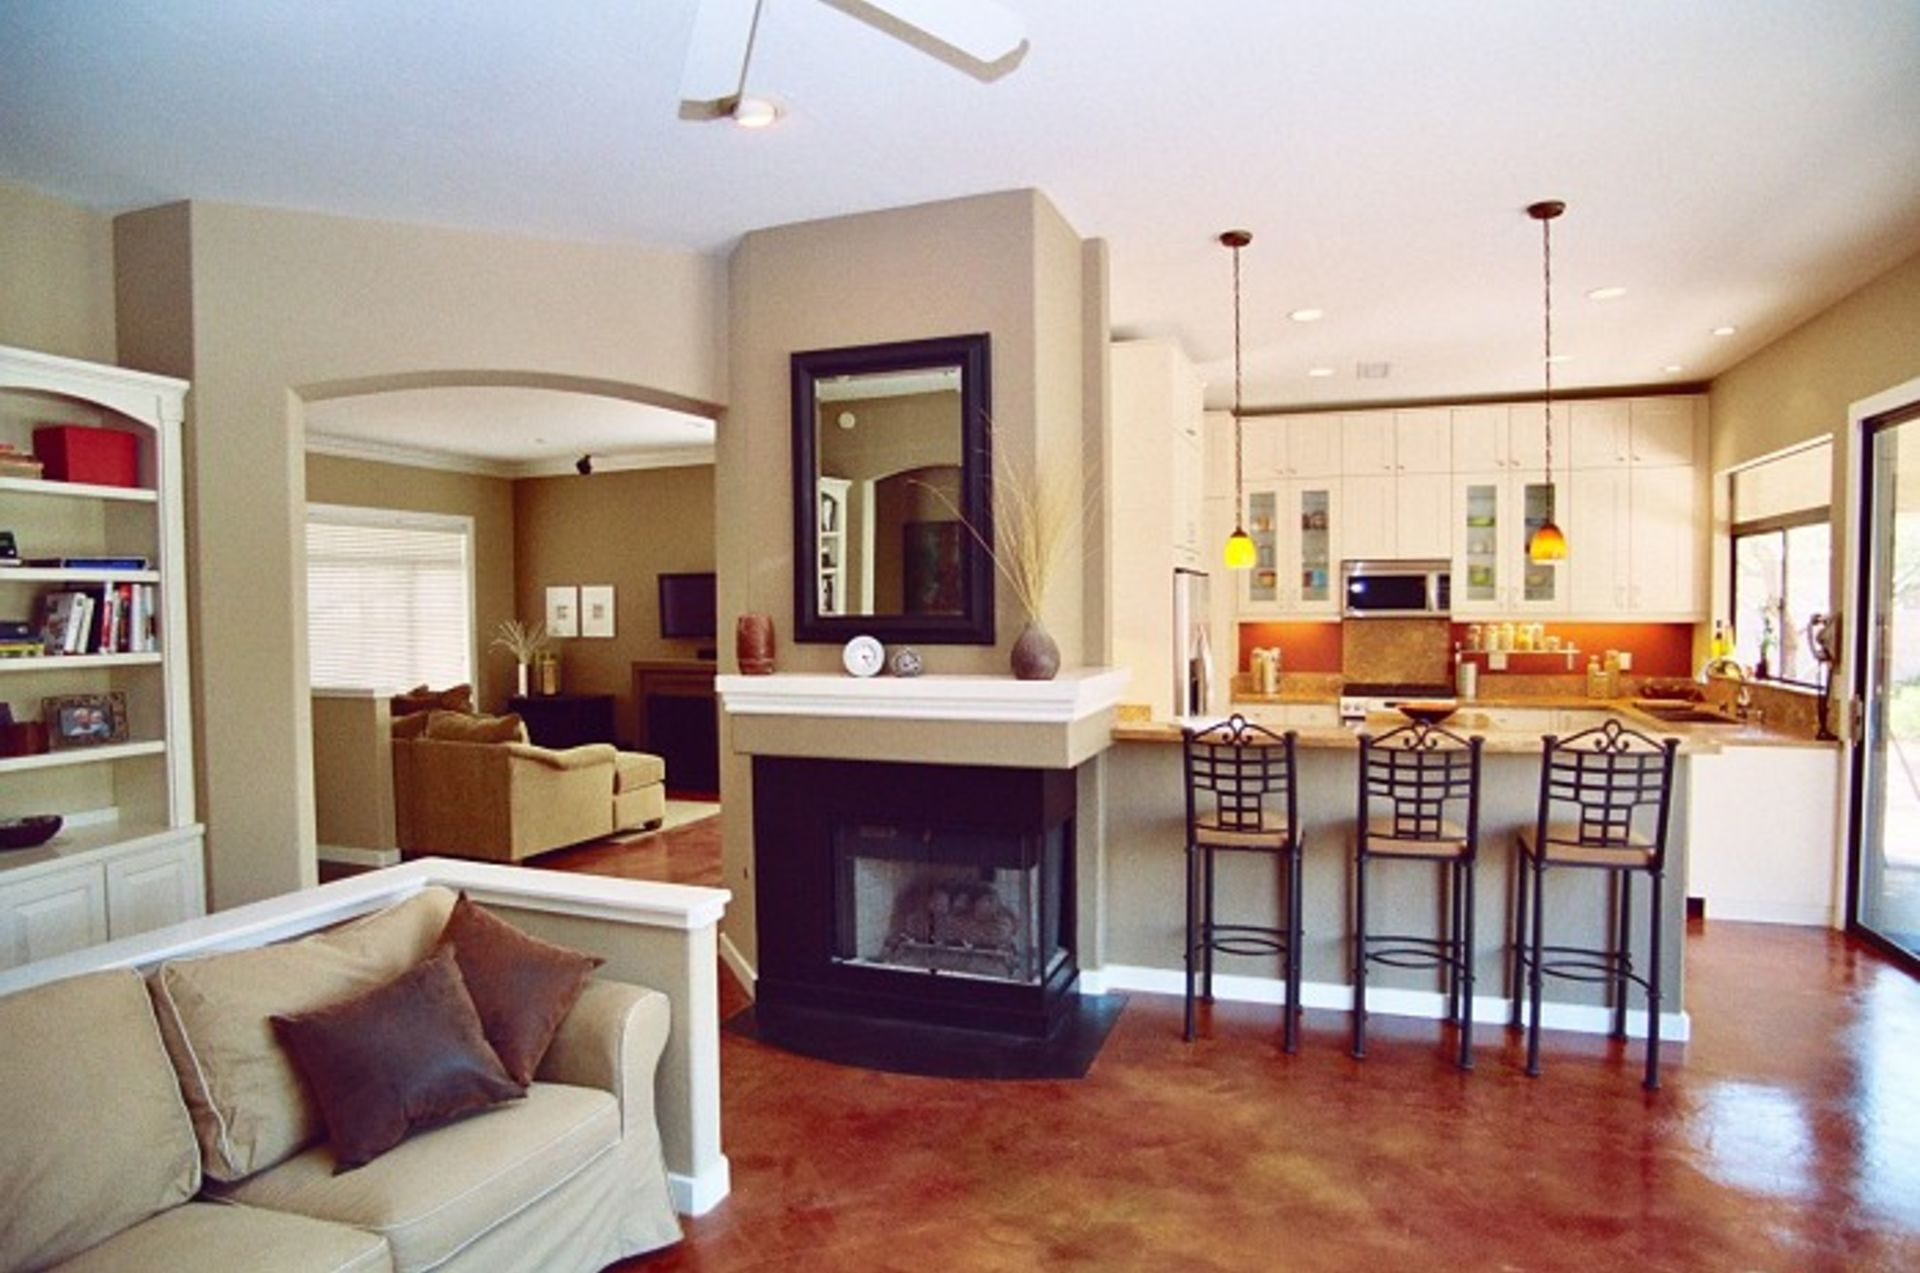 Stage Your Home to Sell!